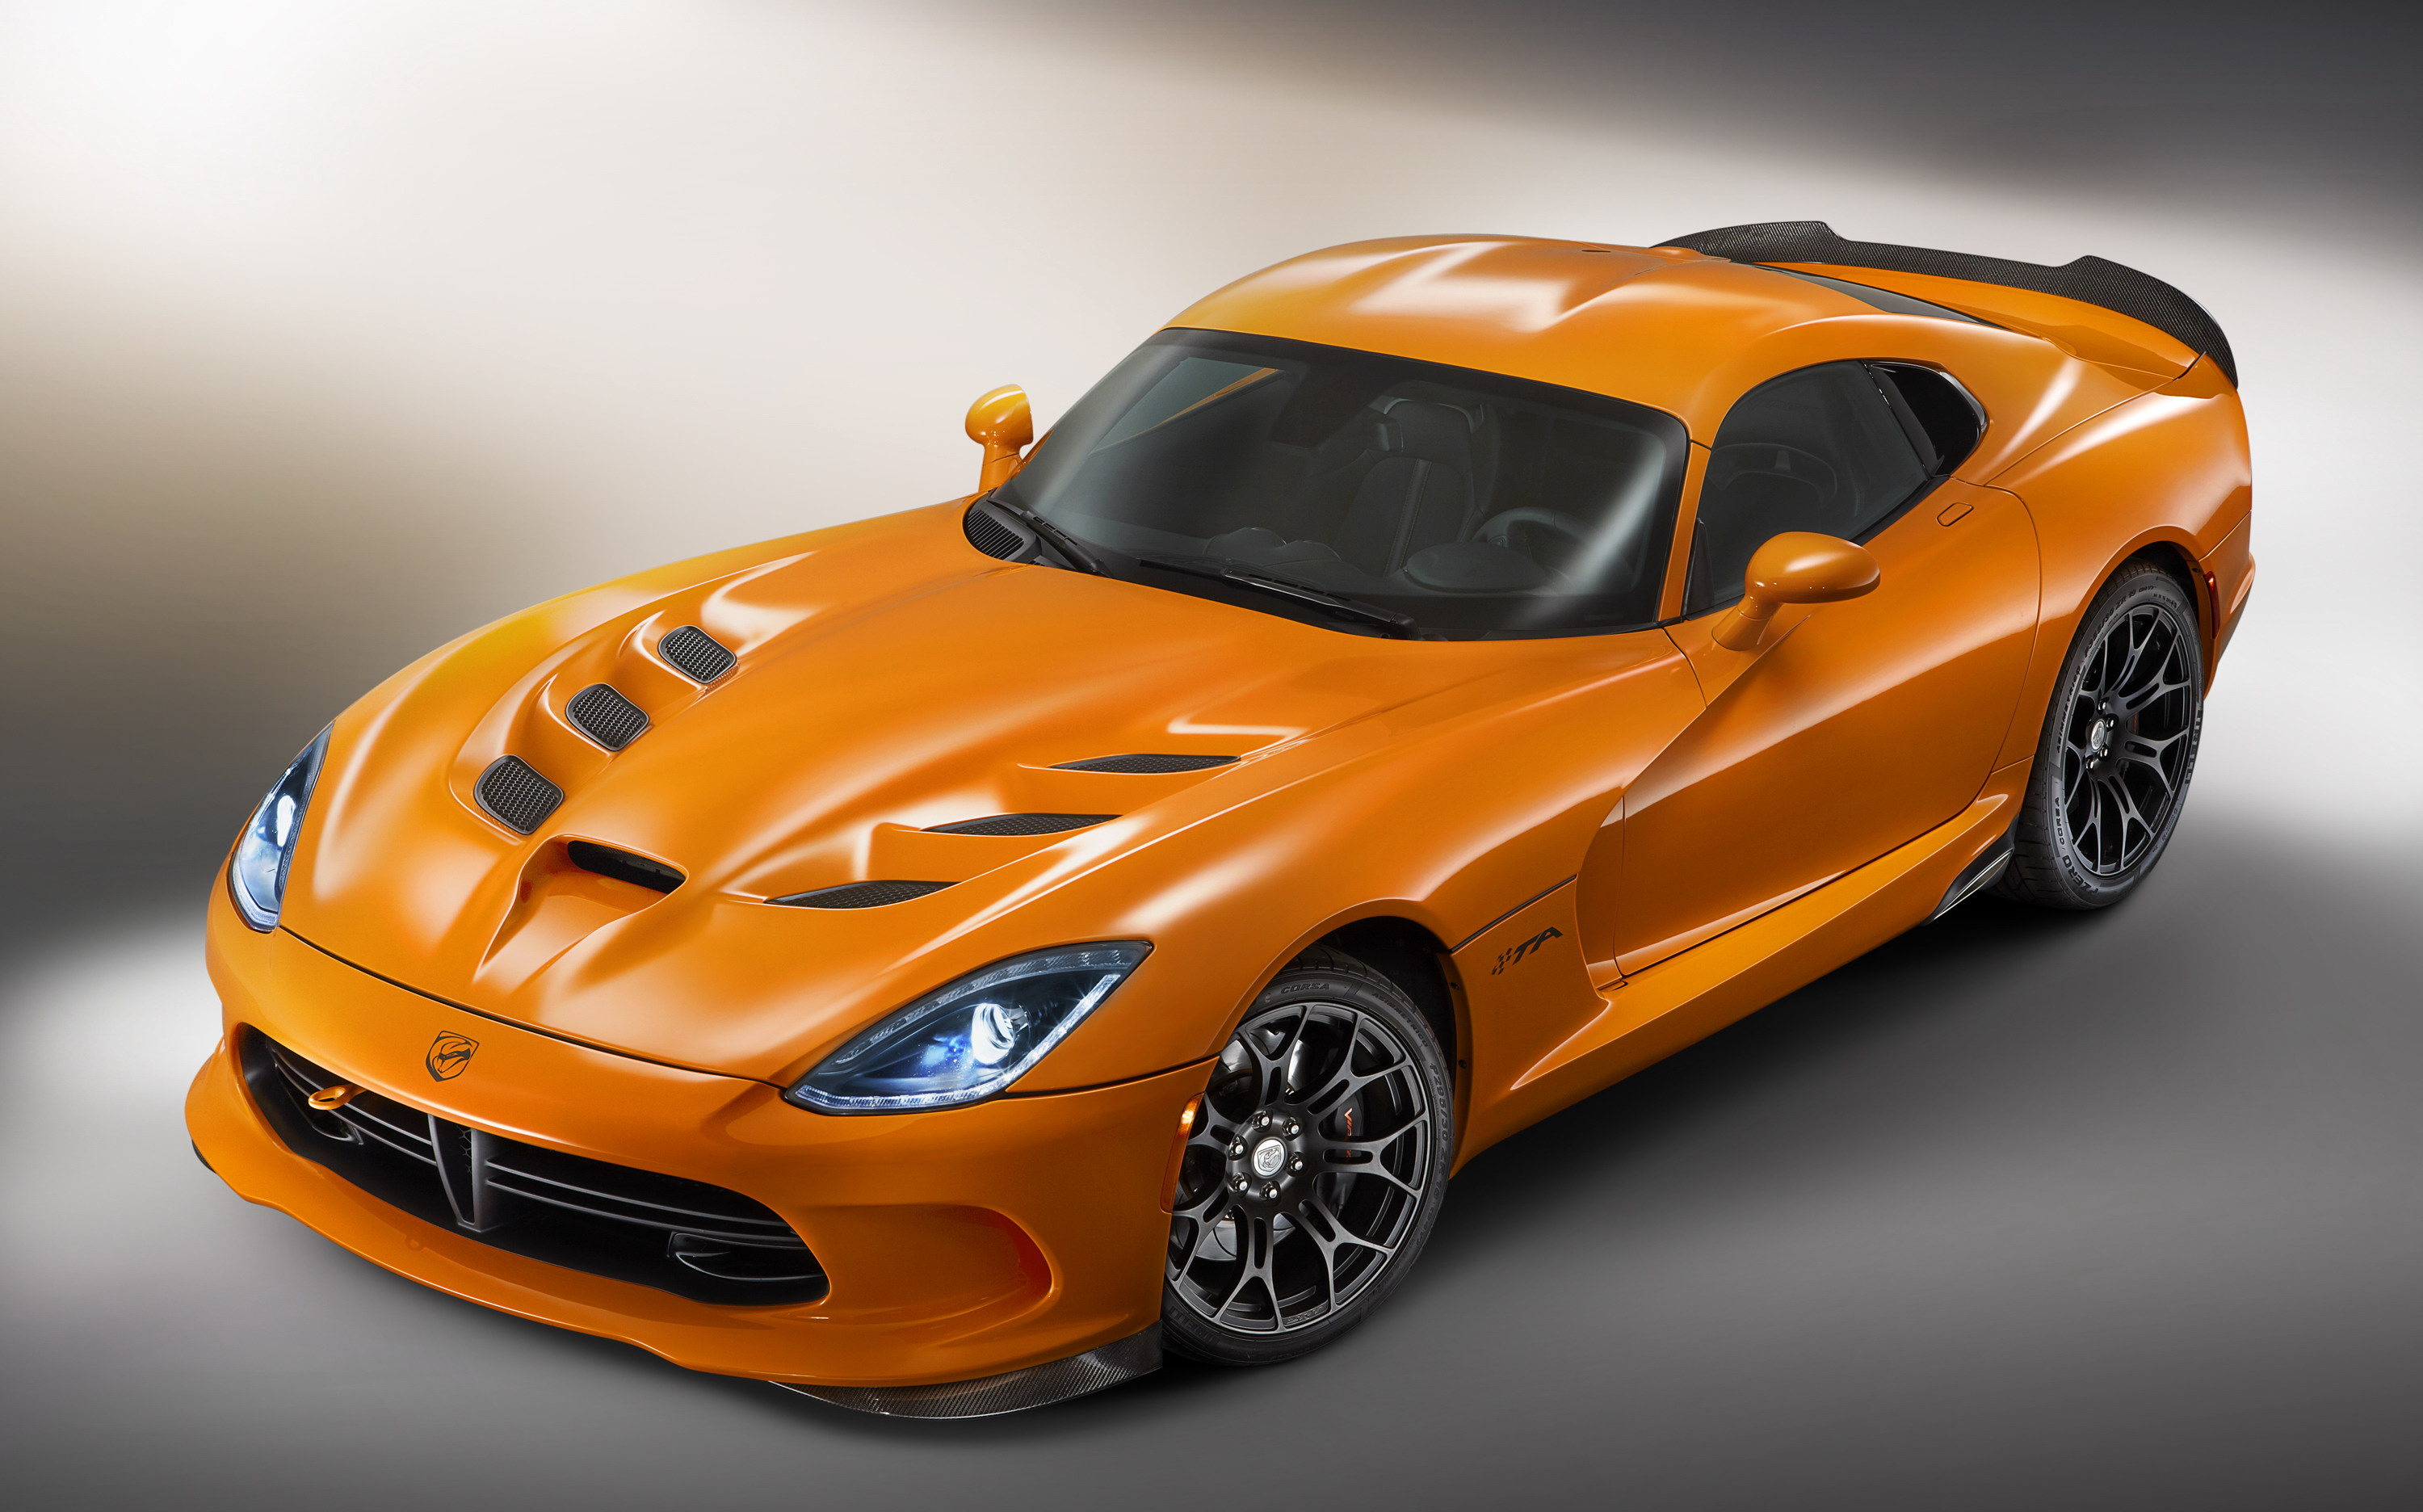 66 Concept of Dodge Viper Acr 2020 Pictures for Dodge Viper Acr 2020